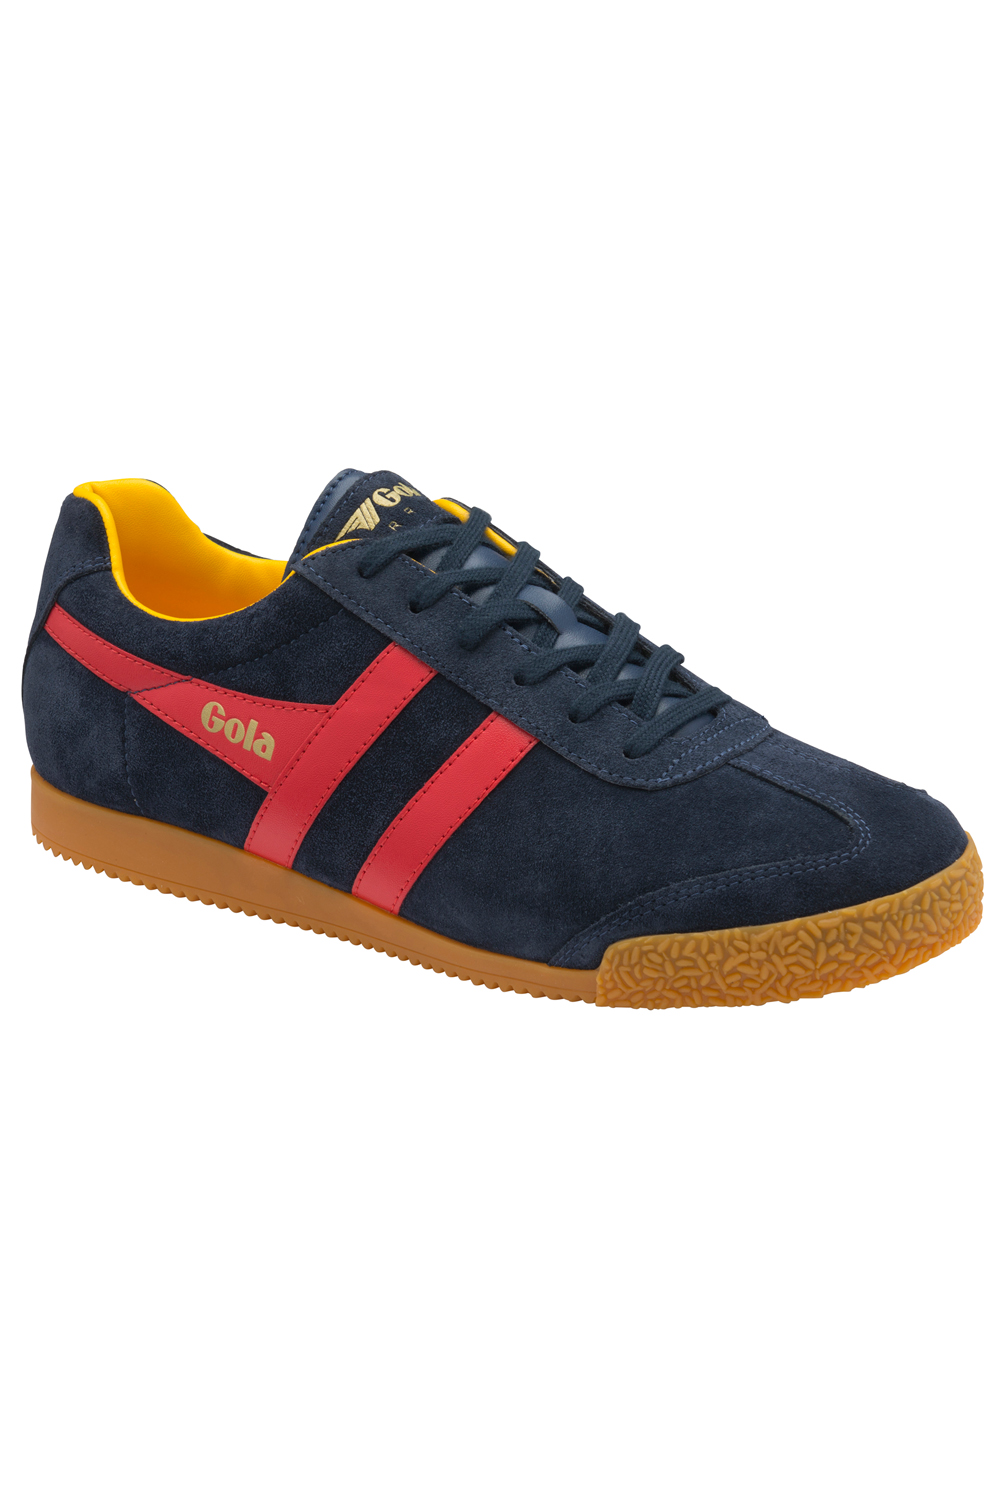 Gola-Harrier-Suede-Classic-Vintage-Lace-Up-Sneakers-Mens-Trainers-Low-Top-Shoes thumbnail 20